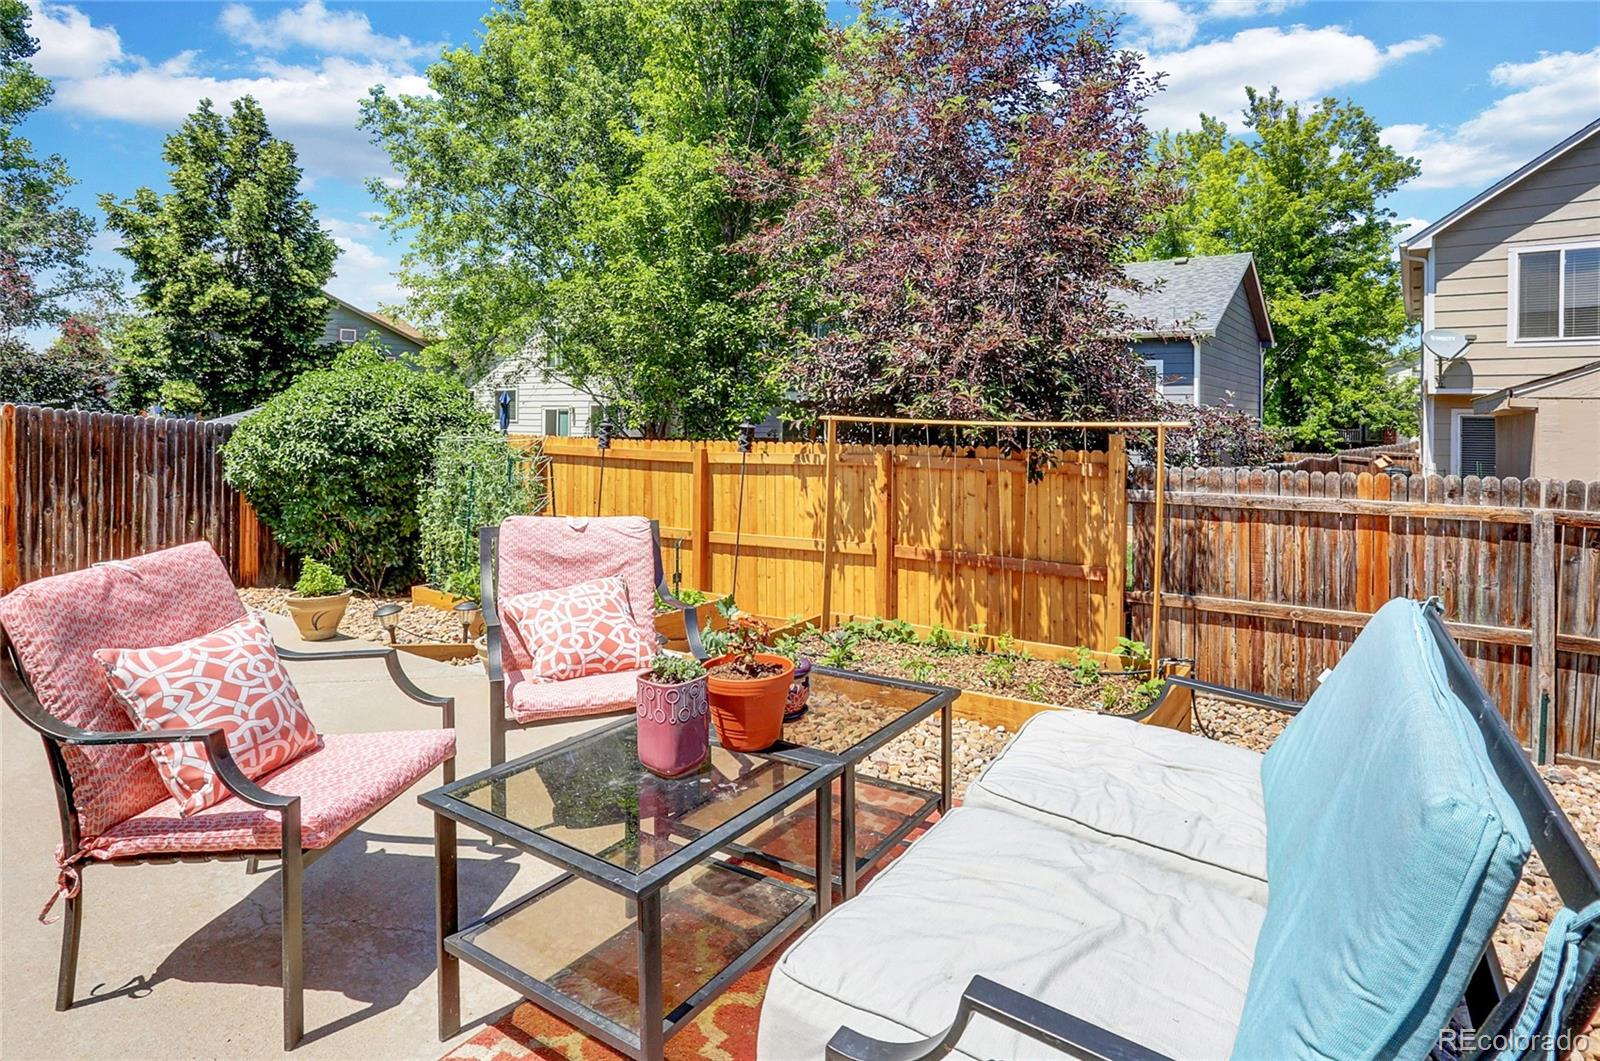 MLS# 7737811 - 25 - 1335 W 133rd Way, Westminster, CO 80234